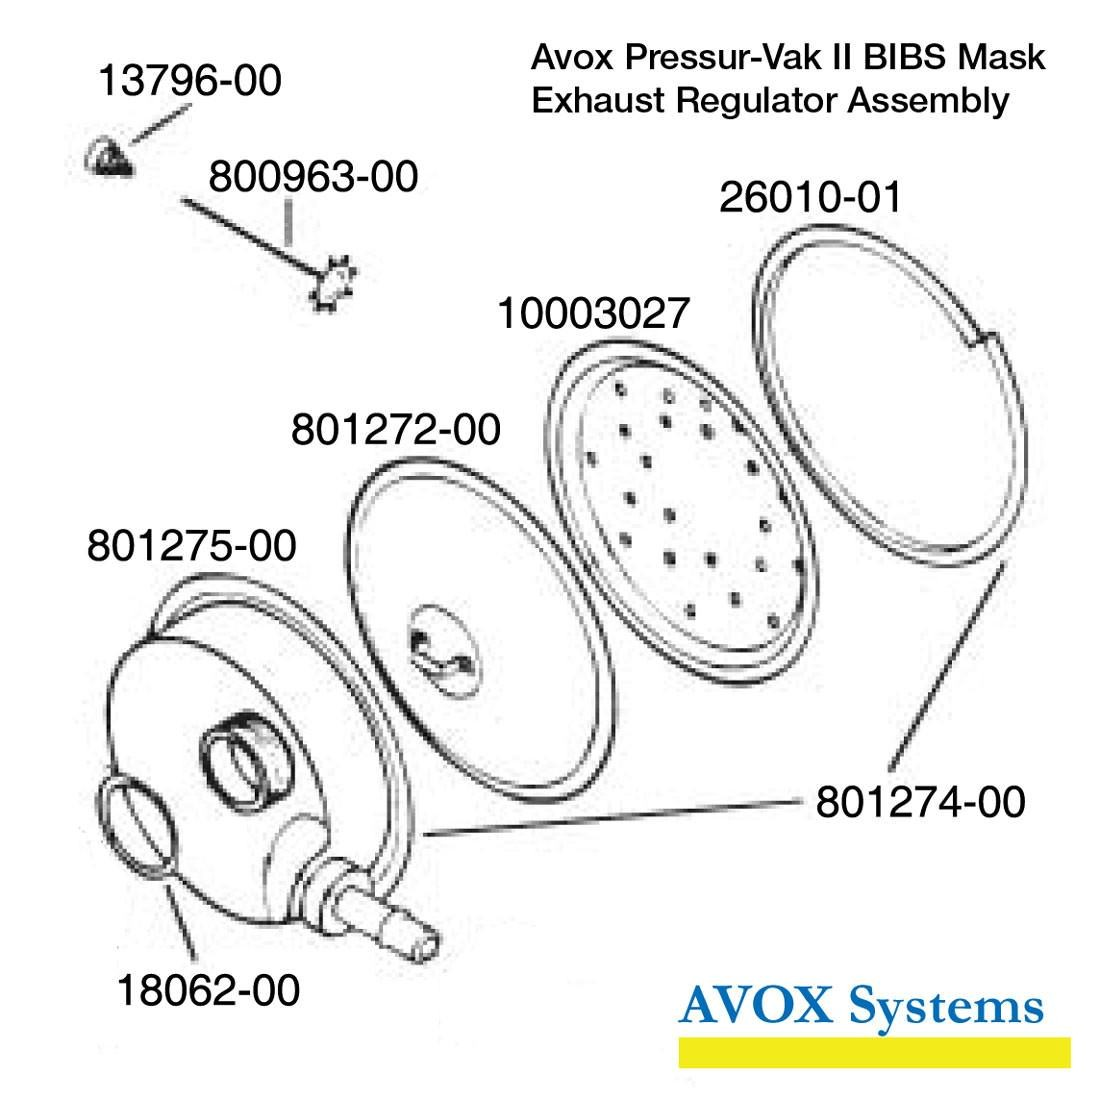 Pressur-Vak II Exhaust Regulator - Spares